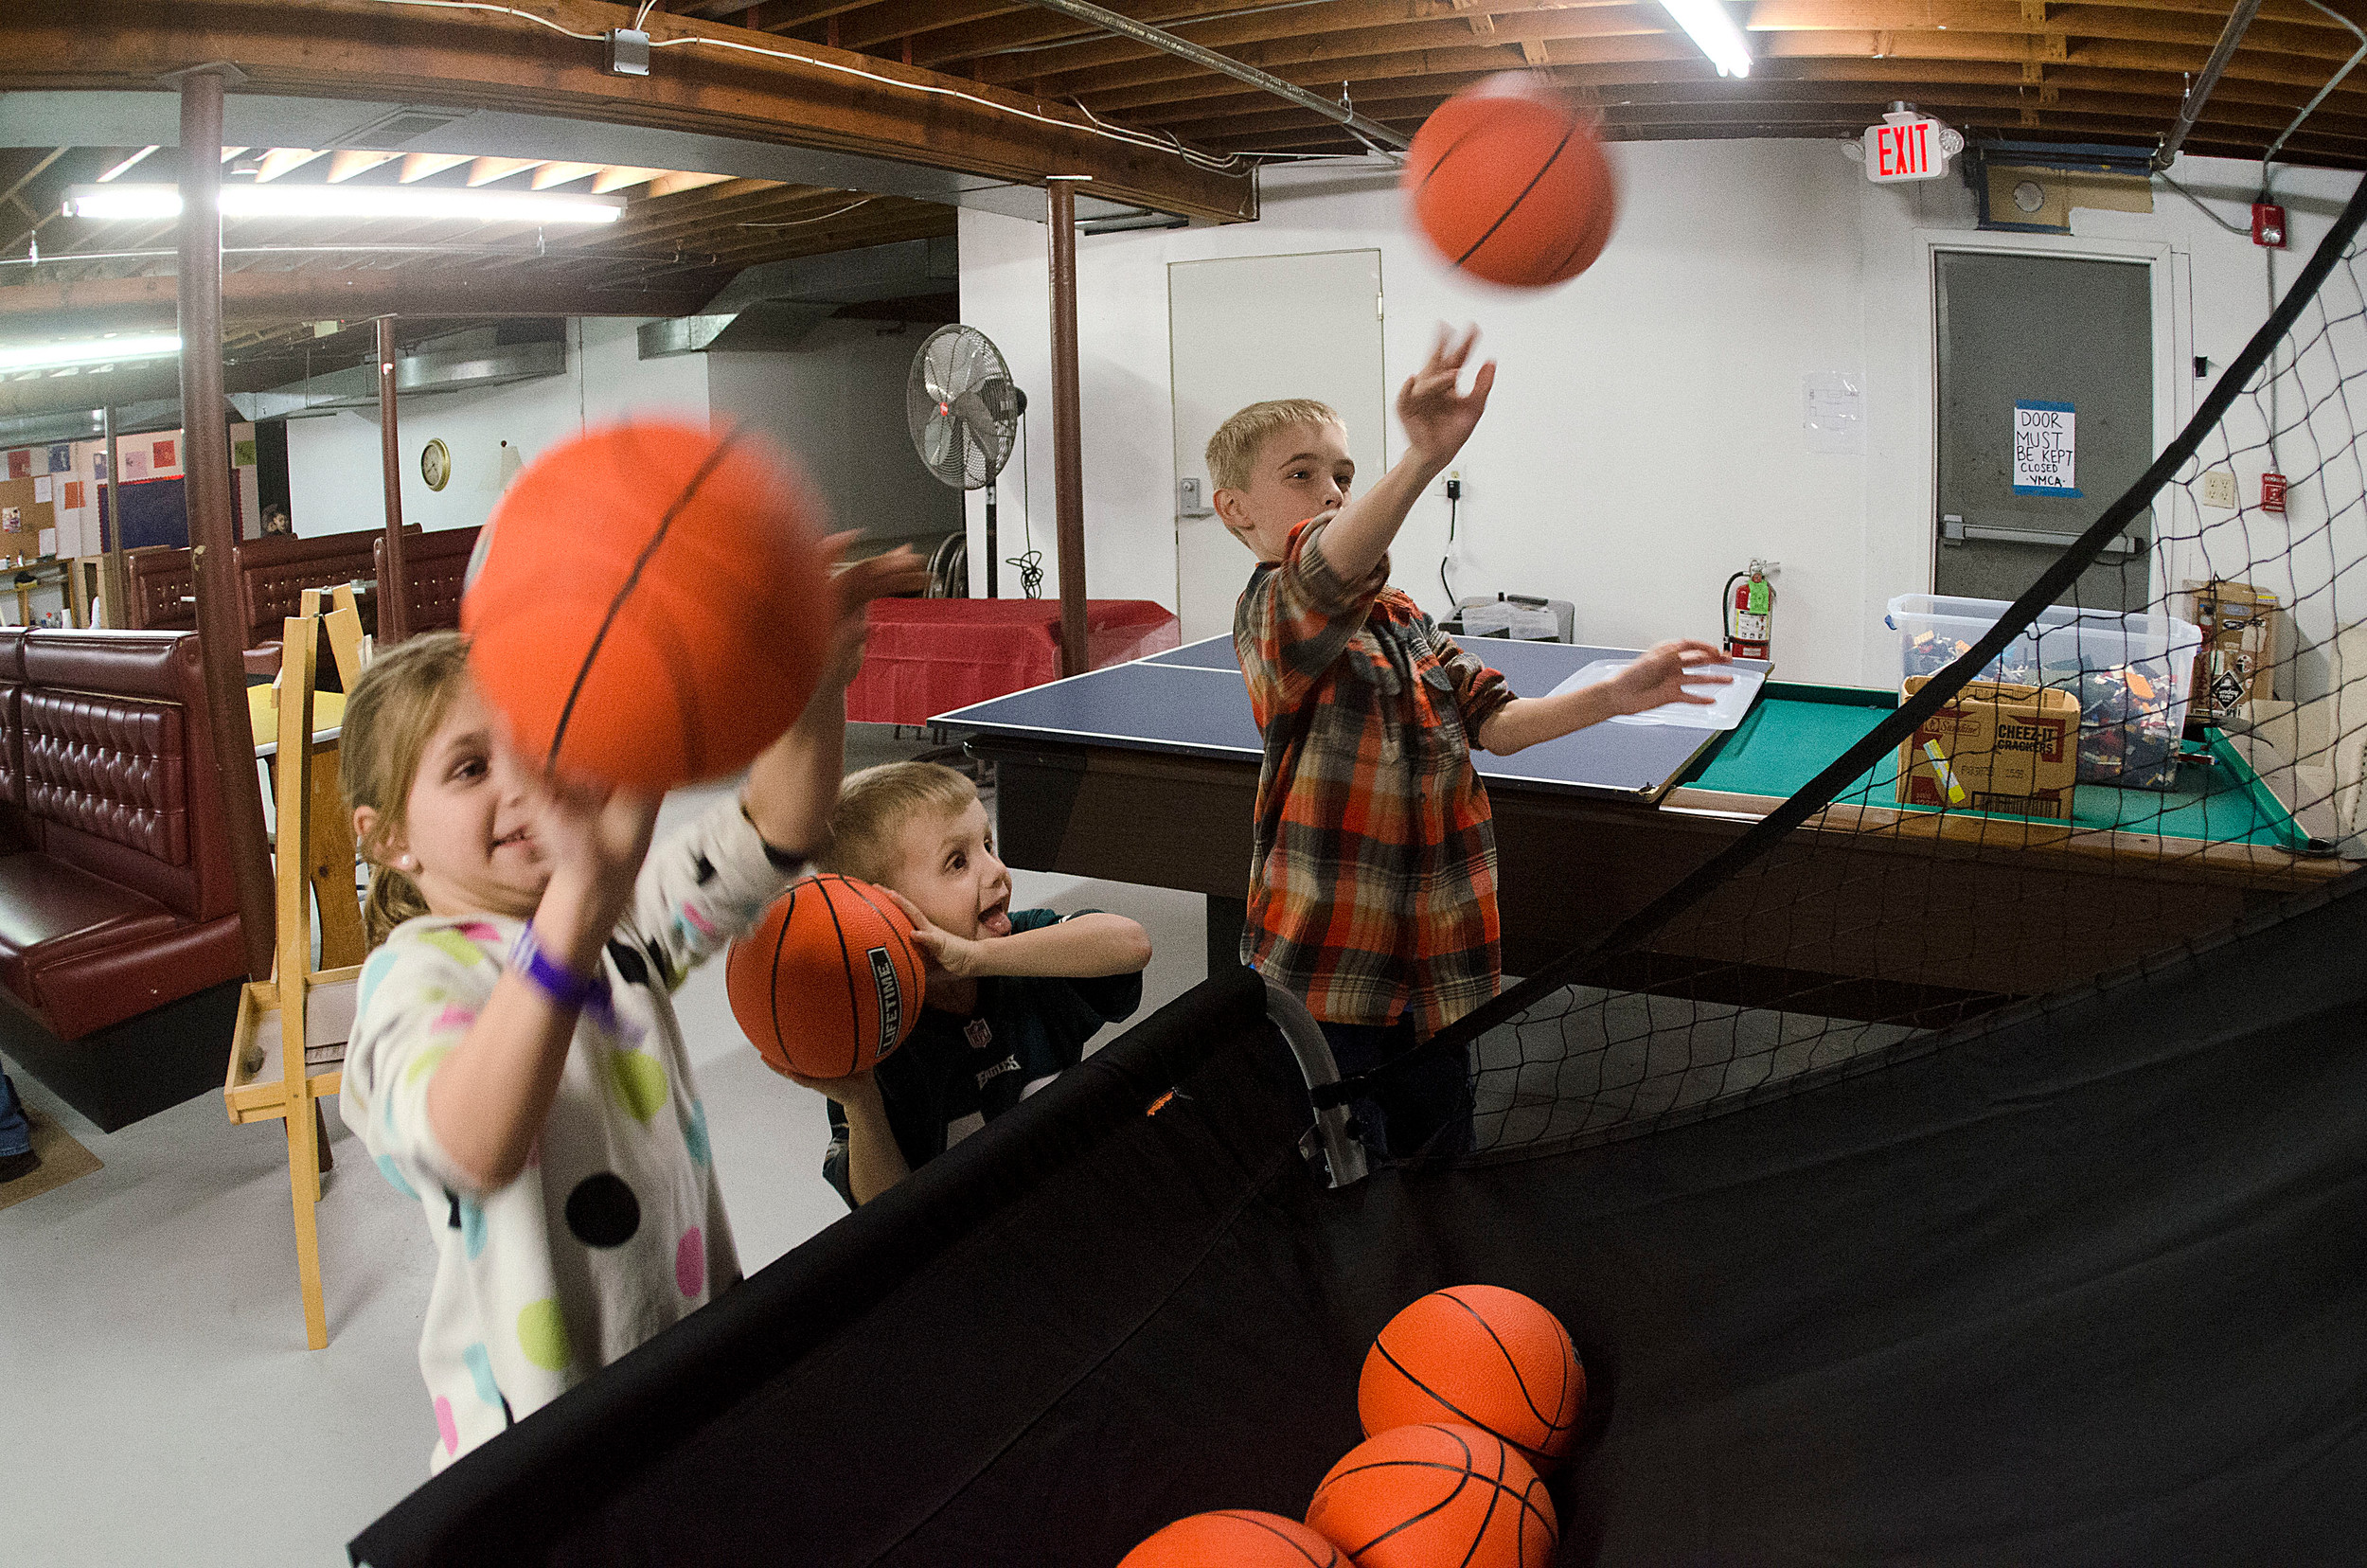 Brooke Marston, 7, Chase Marston, 5 and Jack Marston, 9 (from left), play a basketball shooting game in the basement of the Common Fence Point Community Hall. They were there for the after-school program facilitated by the Newport County YMCA.